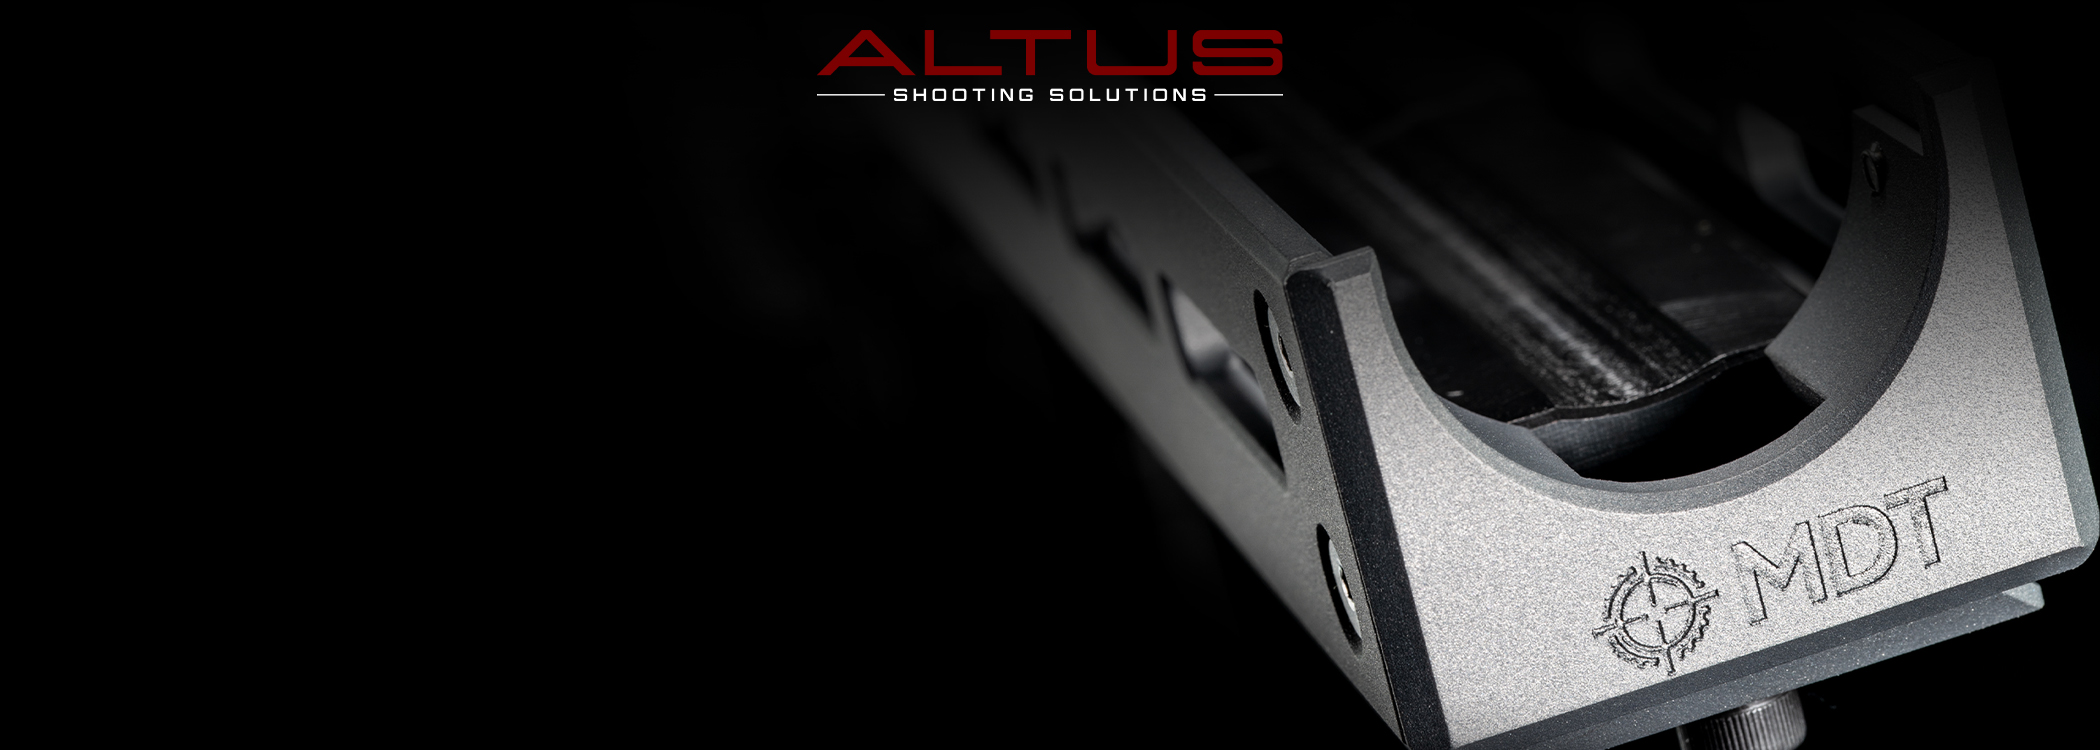 altus-mdt-collection-photo2.jpg